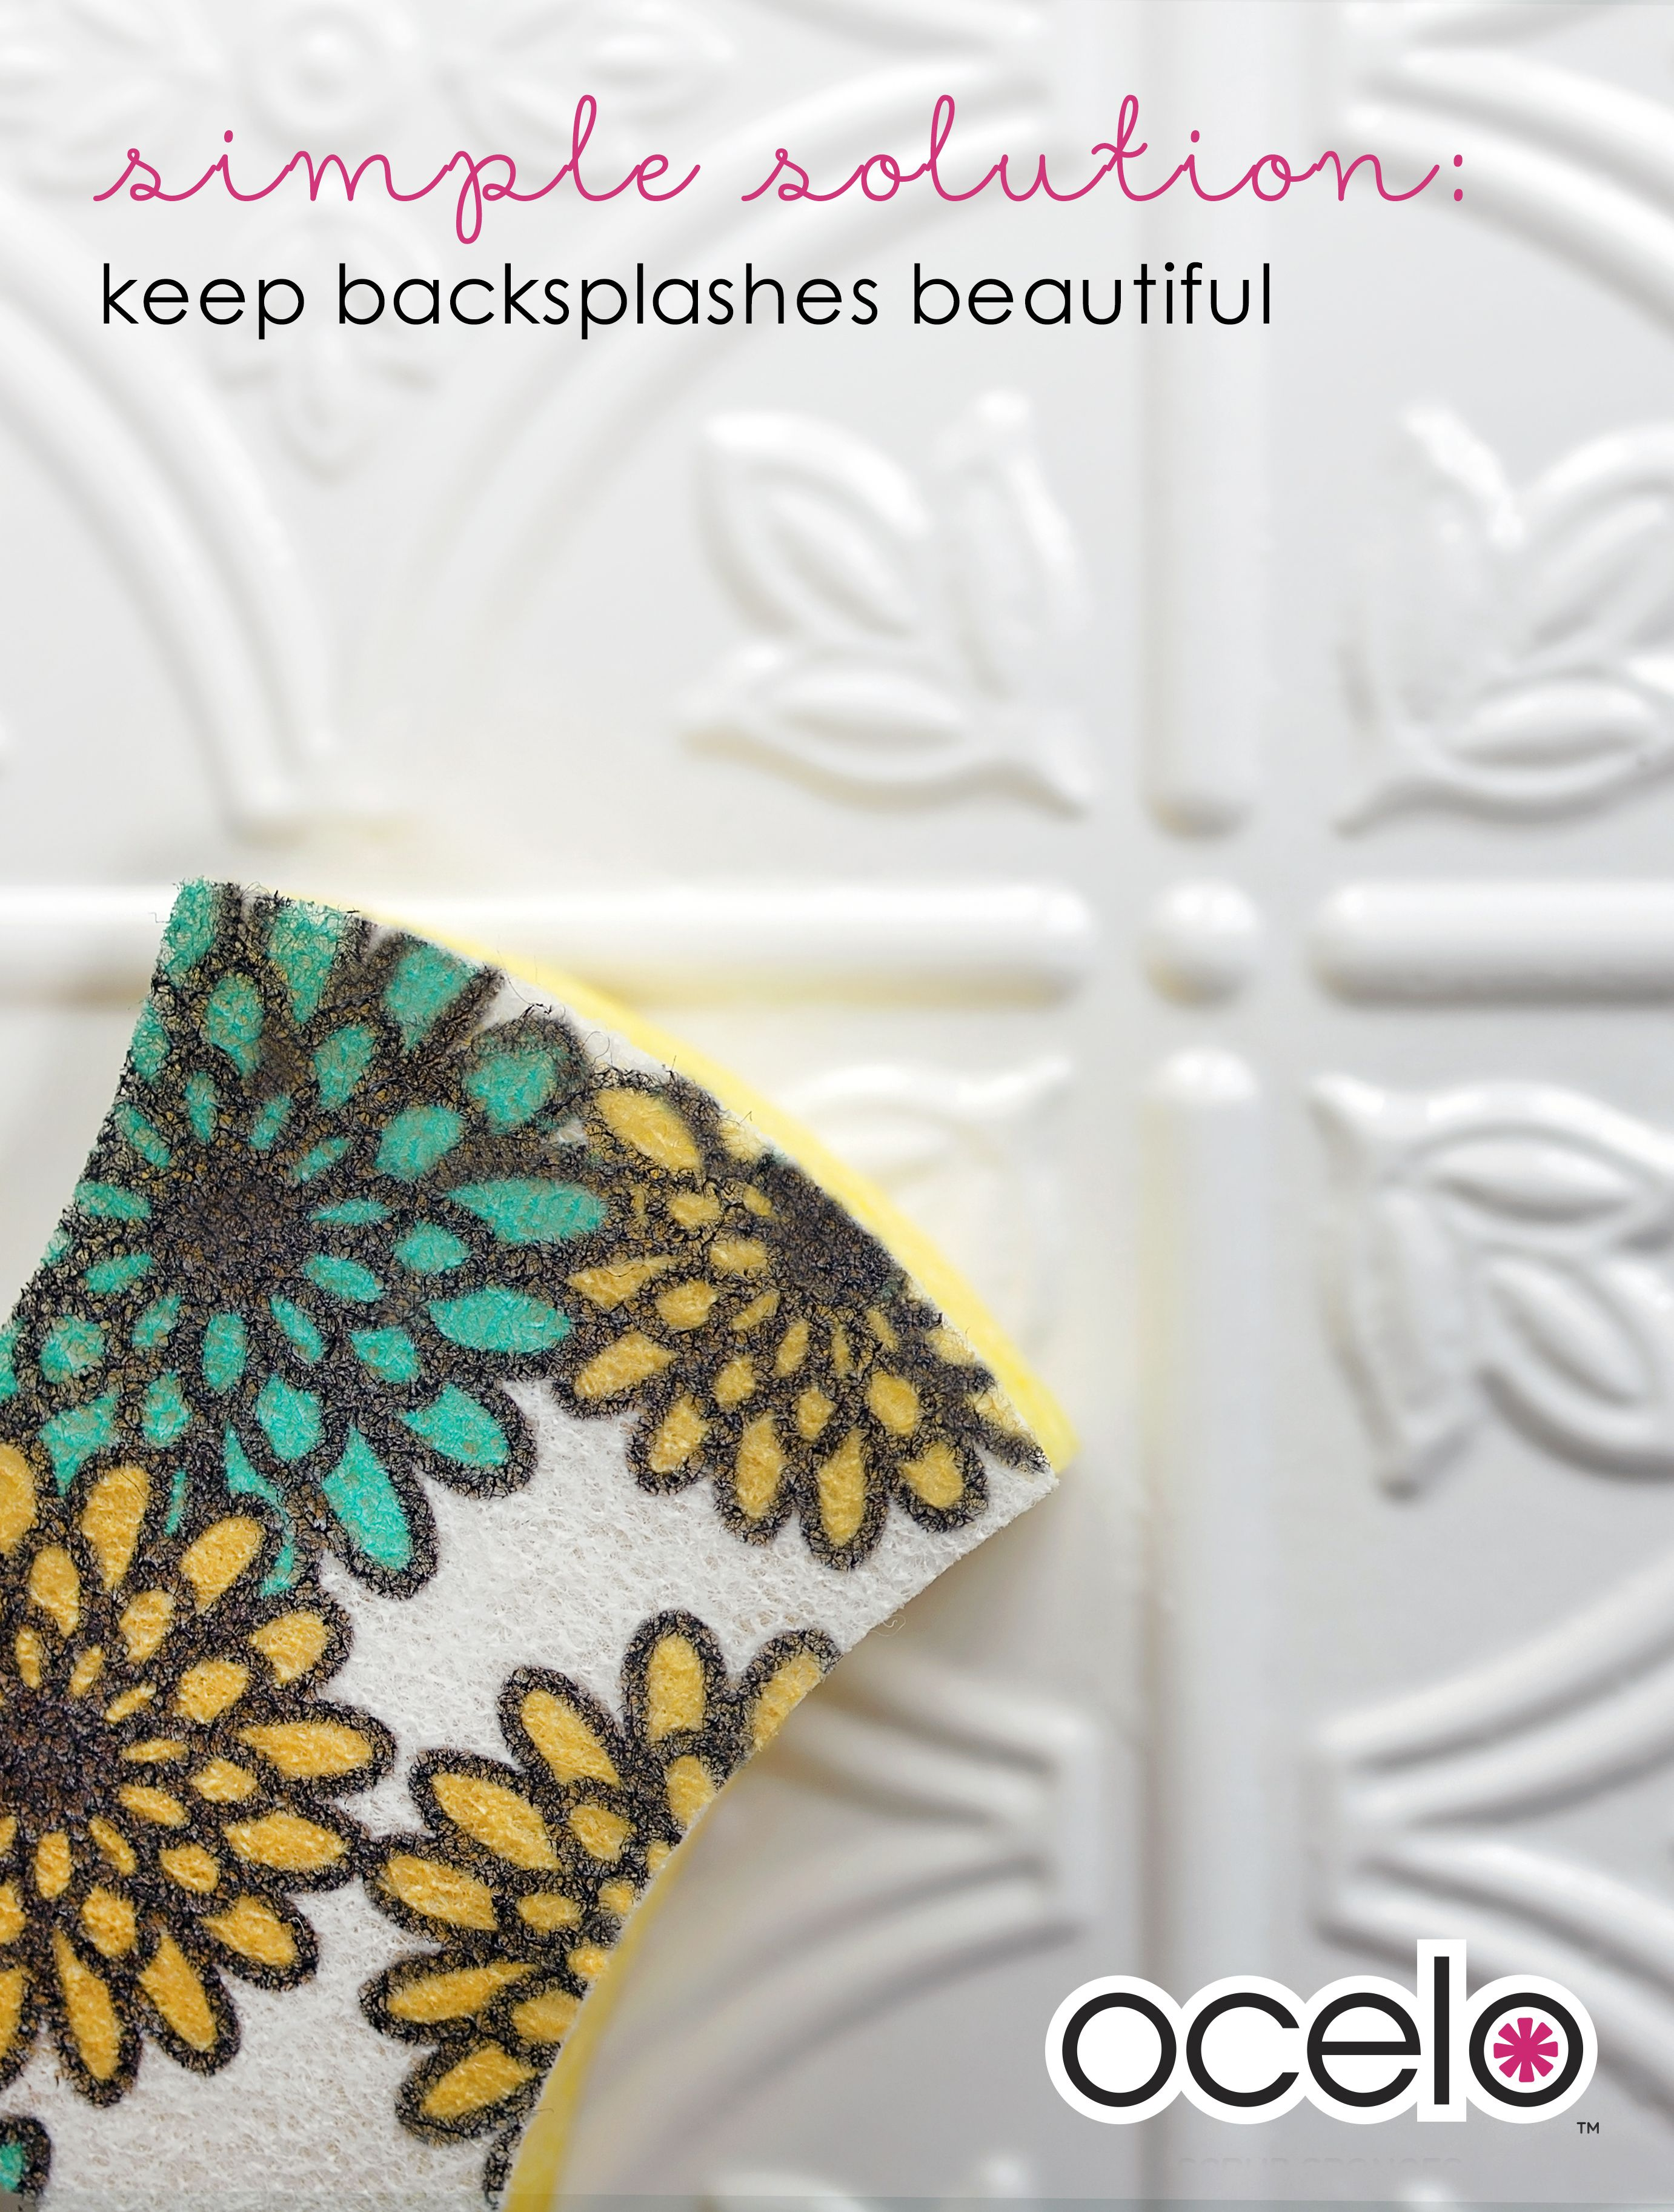 Keep beautiful backsplashes clean with this simple solution use a